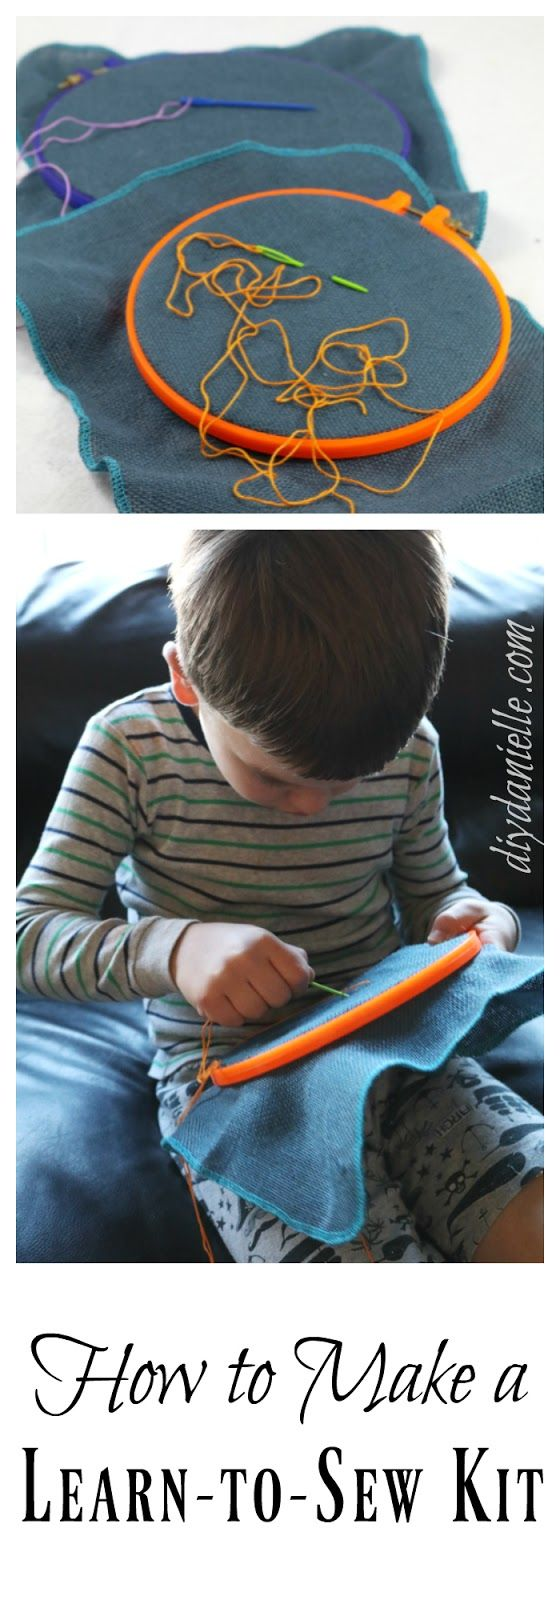 DIY Learn to Sew Kit for Kids: Reusable, Affordable Alternative to Electronics